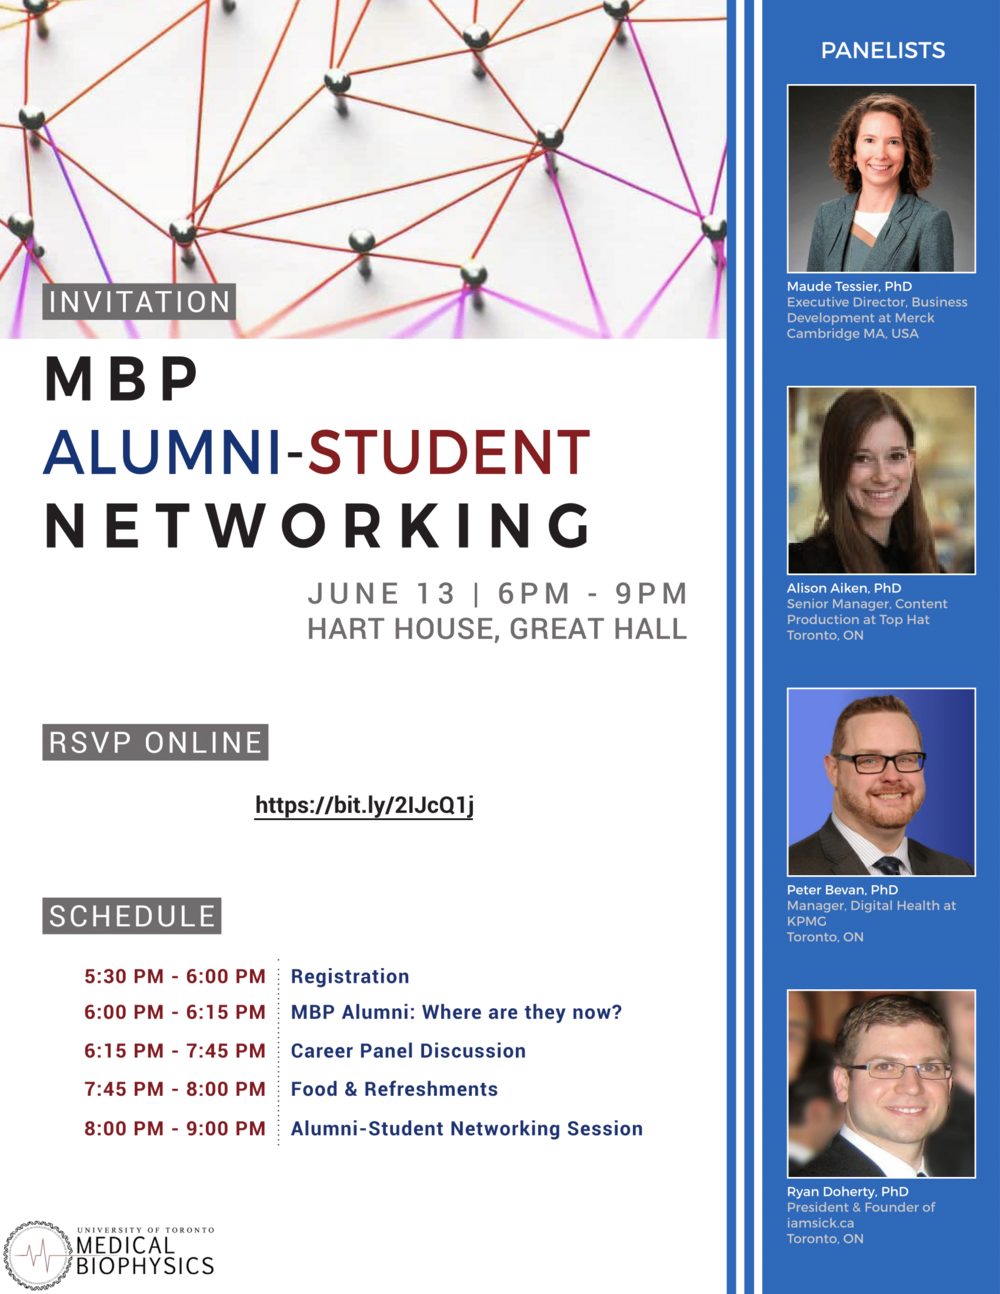 MBP Alumni-Student Networking Invite_b_edited1-1.png